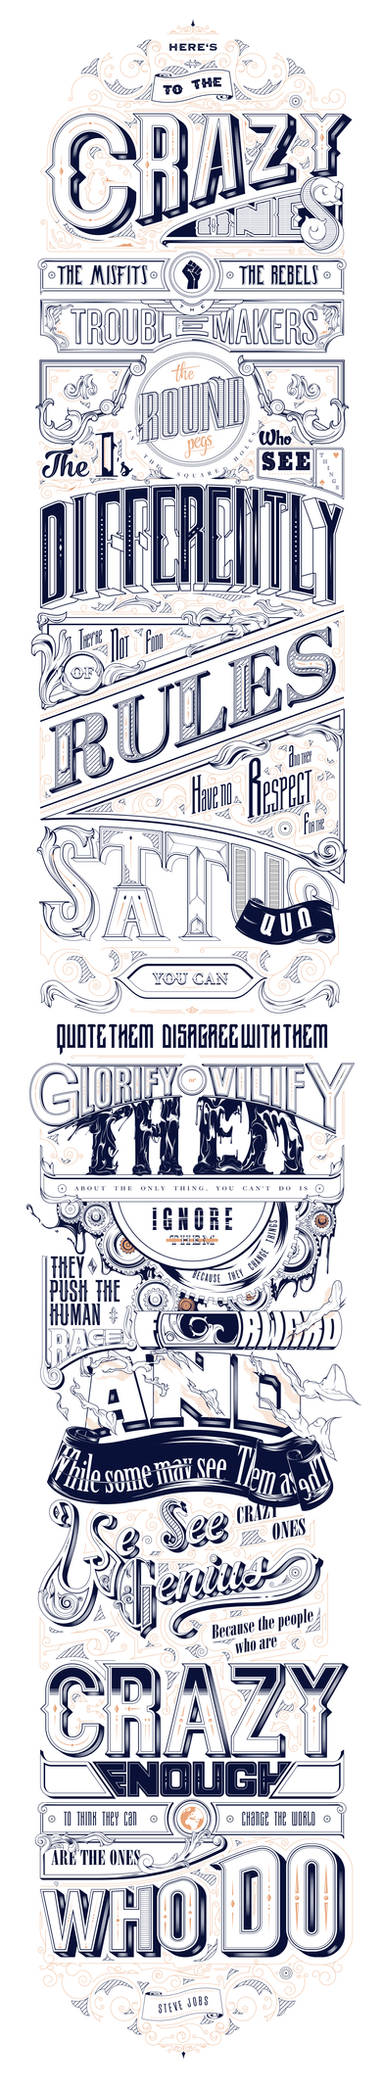 Steve Jobs Famous Quote Typography